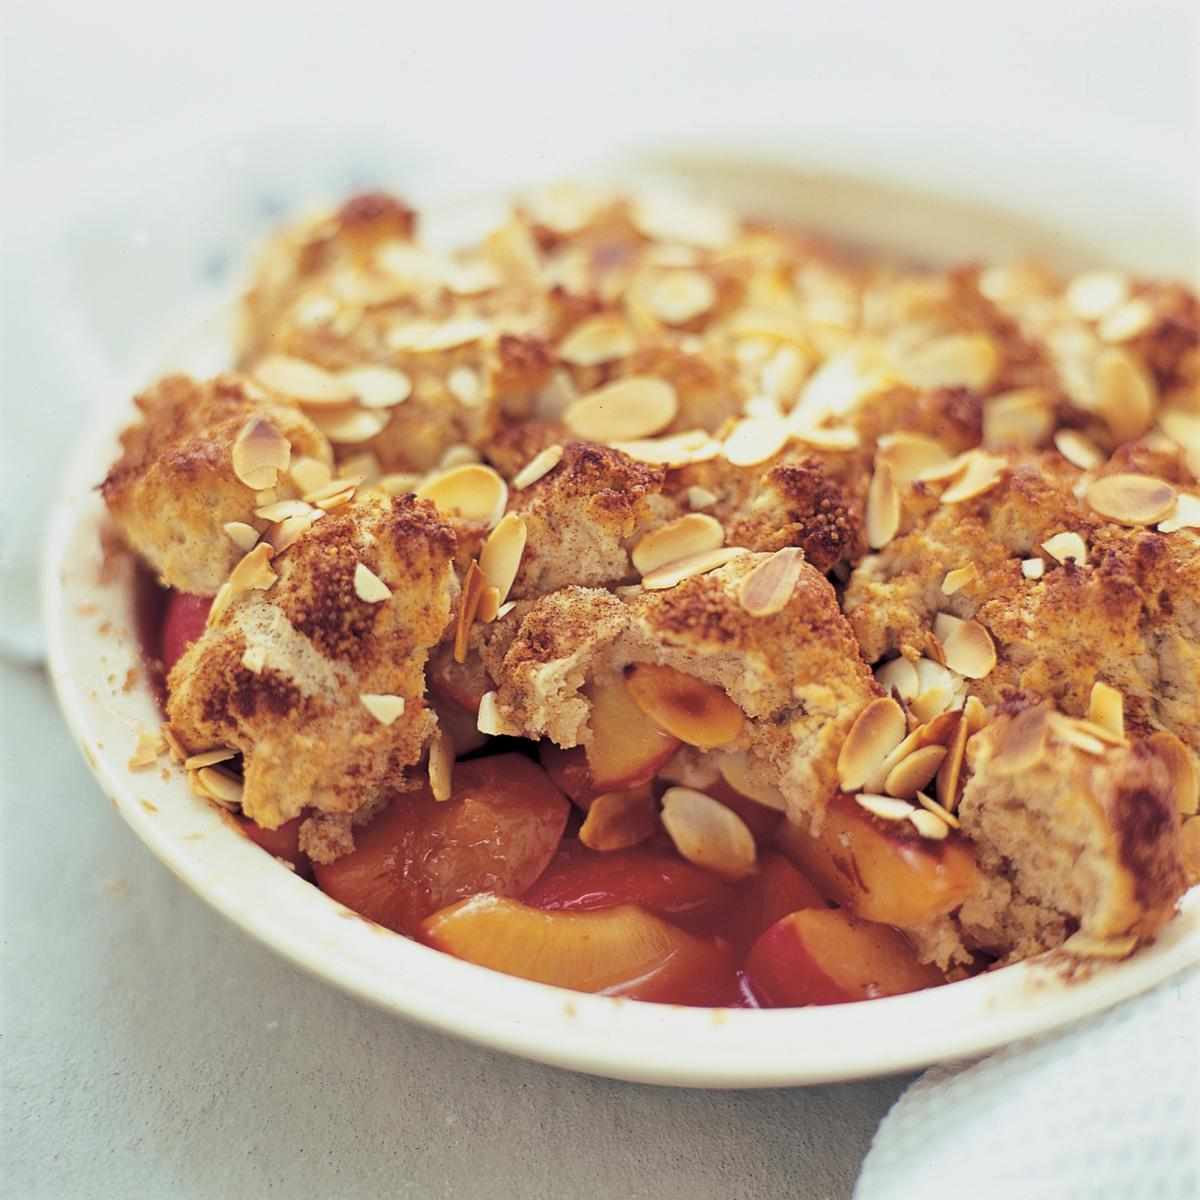 Puddings plum and almond buttermilk cobbler